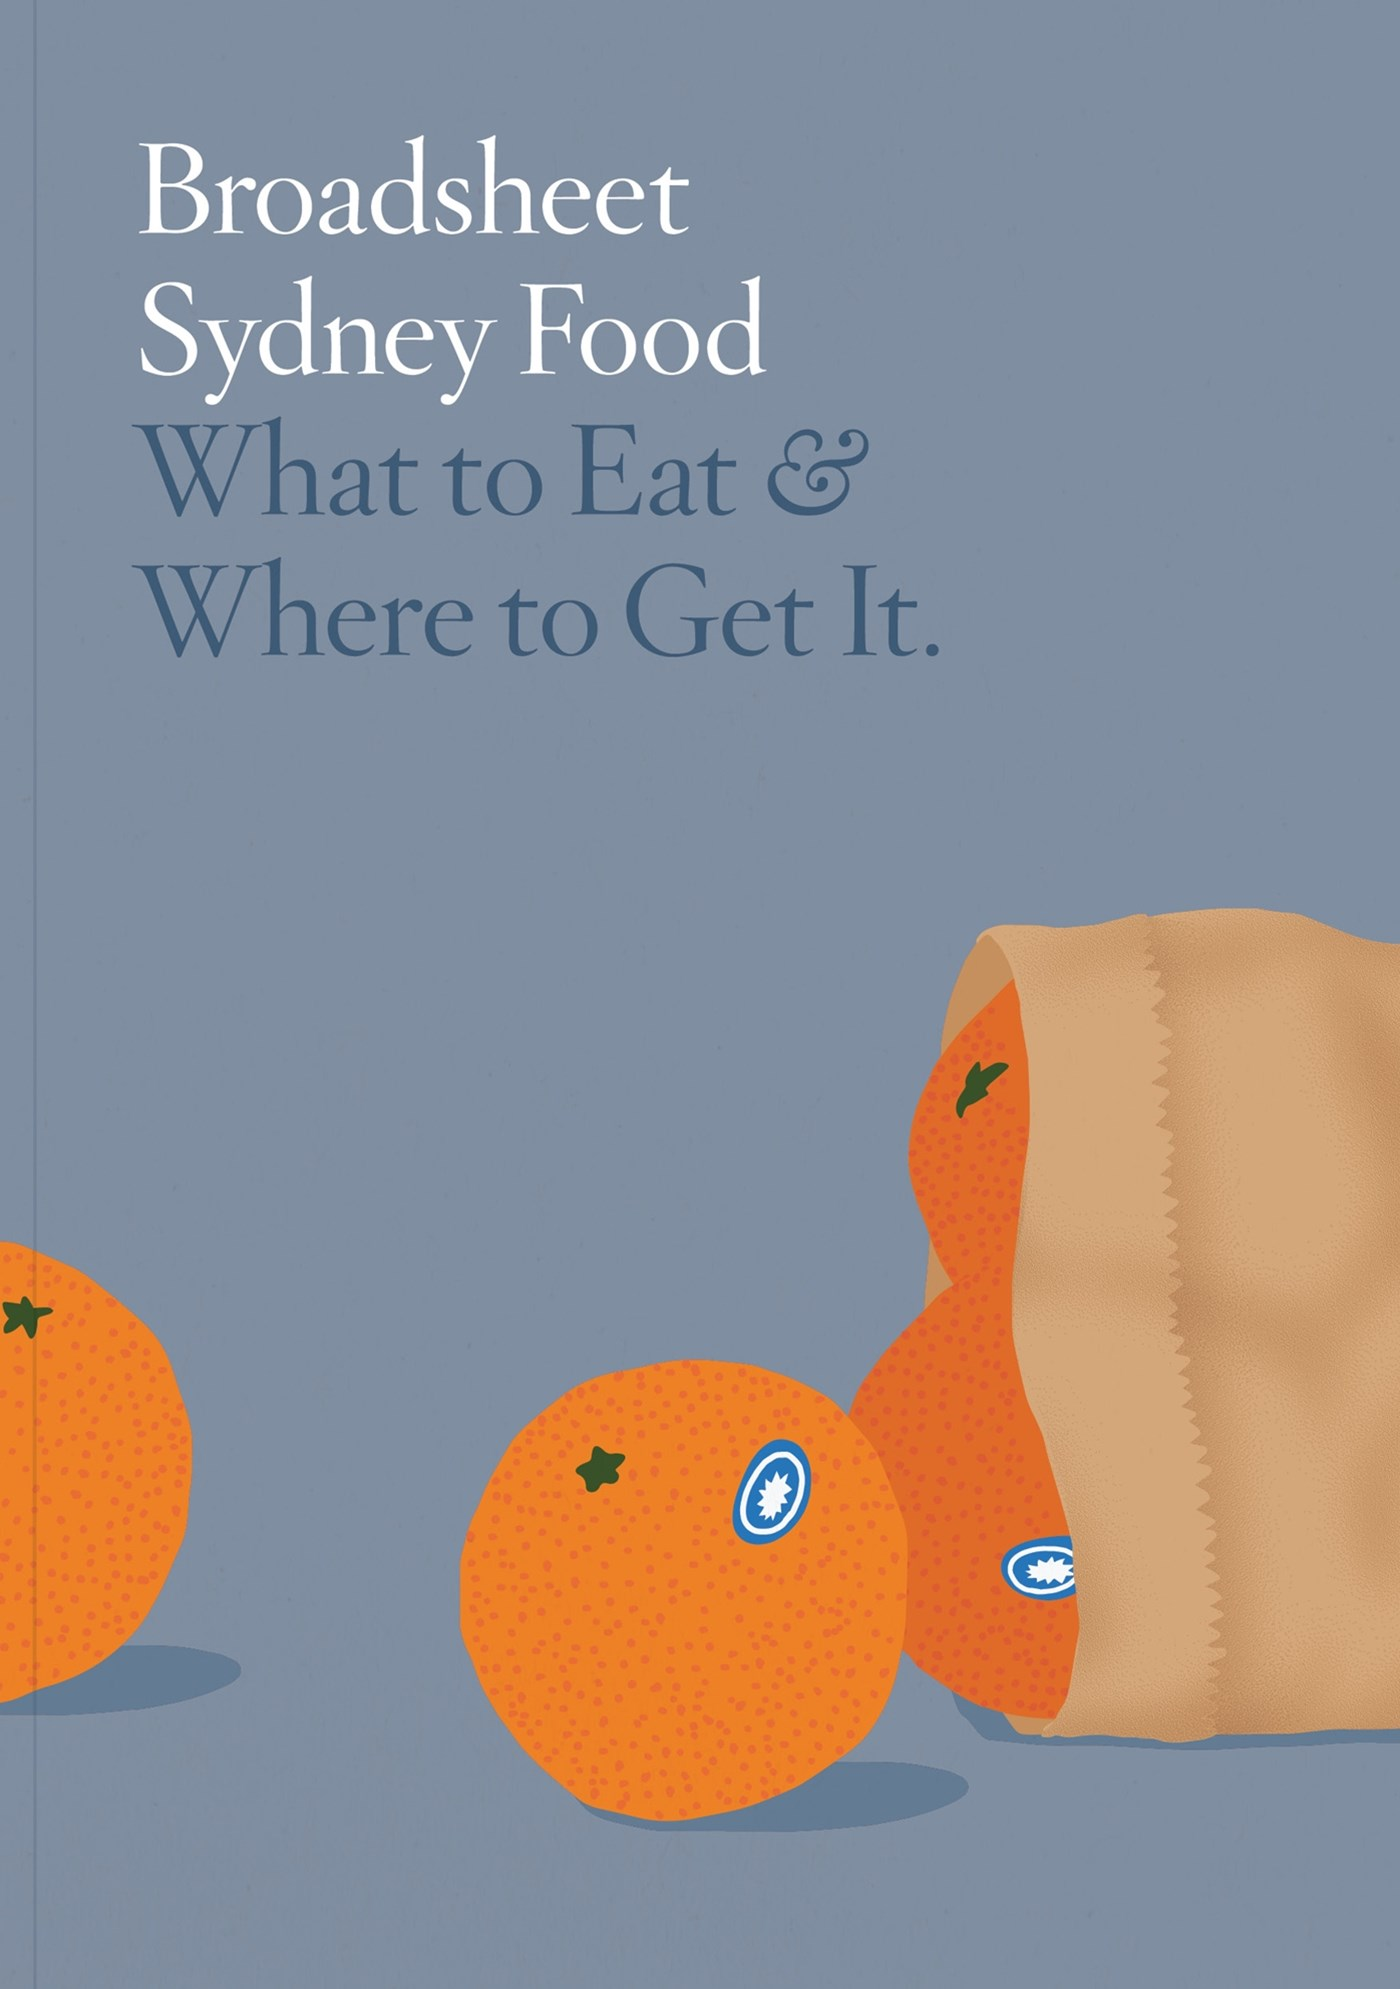 Broadsheet Sydney Food